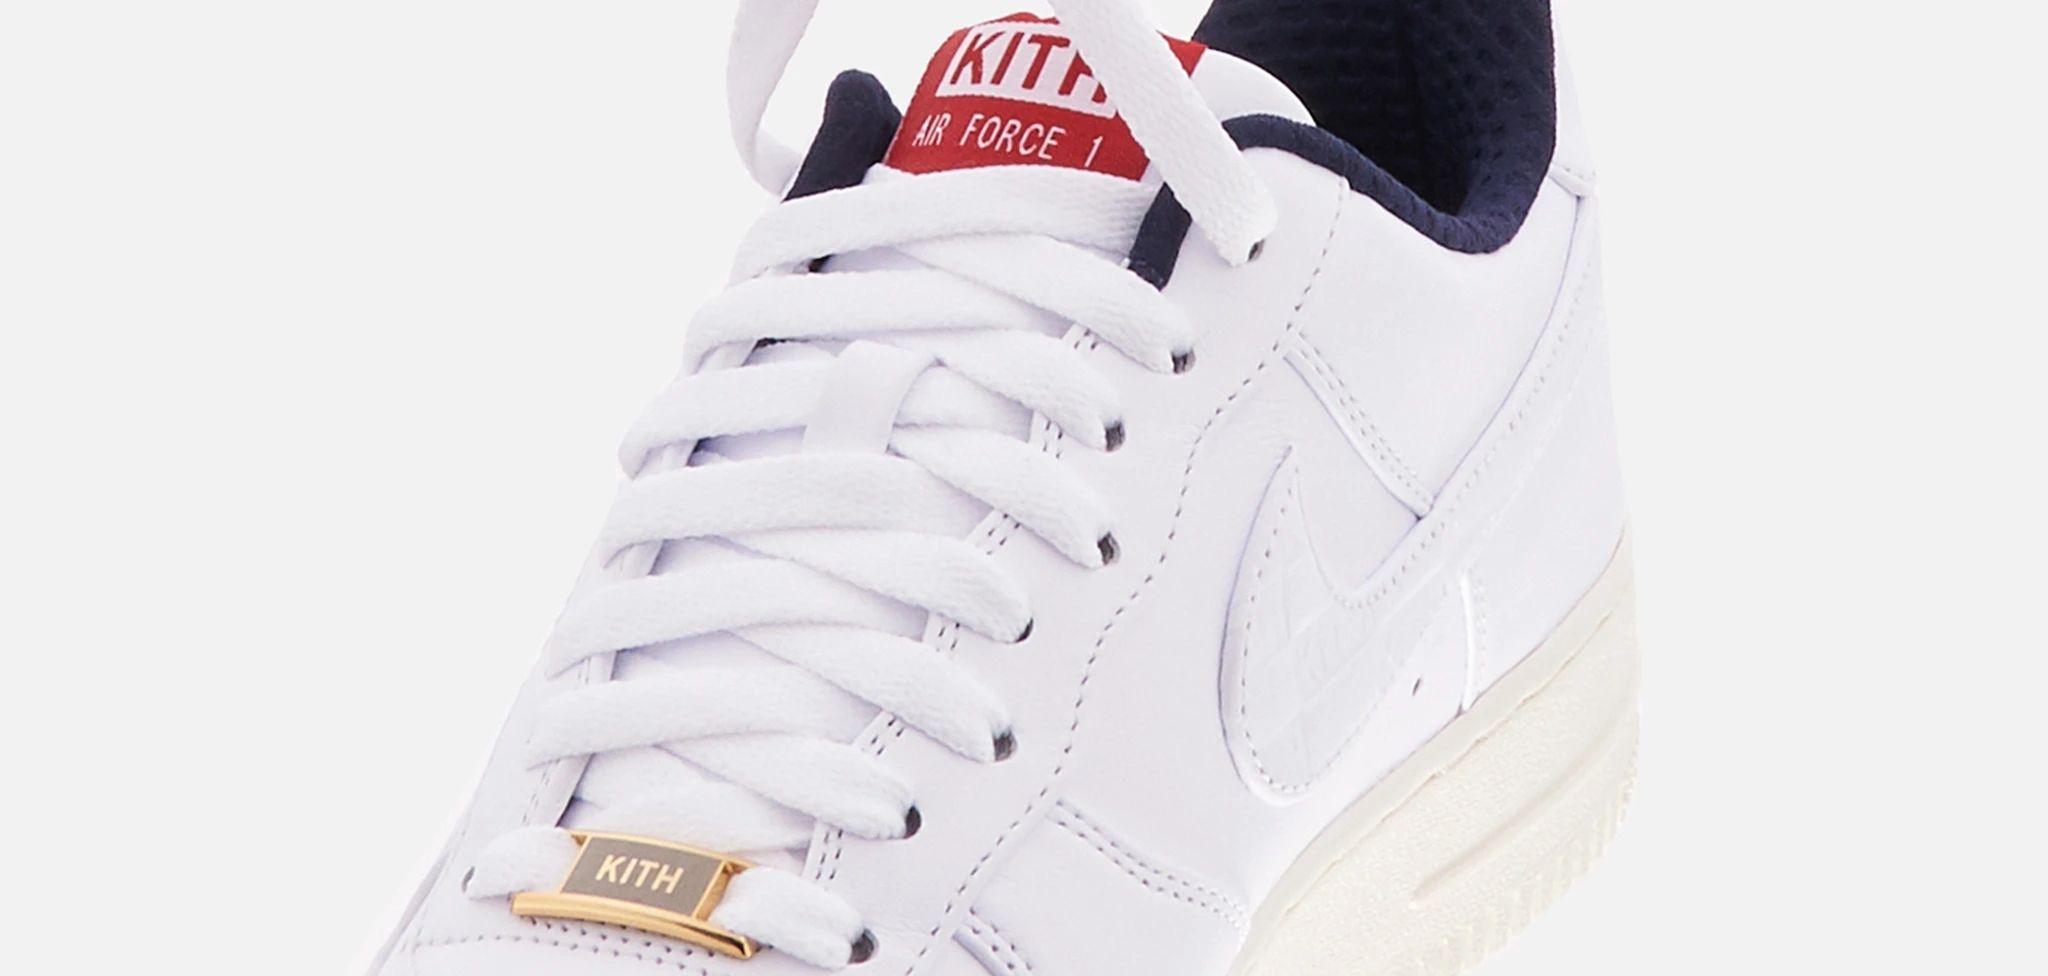 kith-nike-air-force-1-low-raffle-20200514-20200517